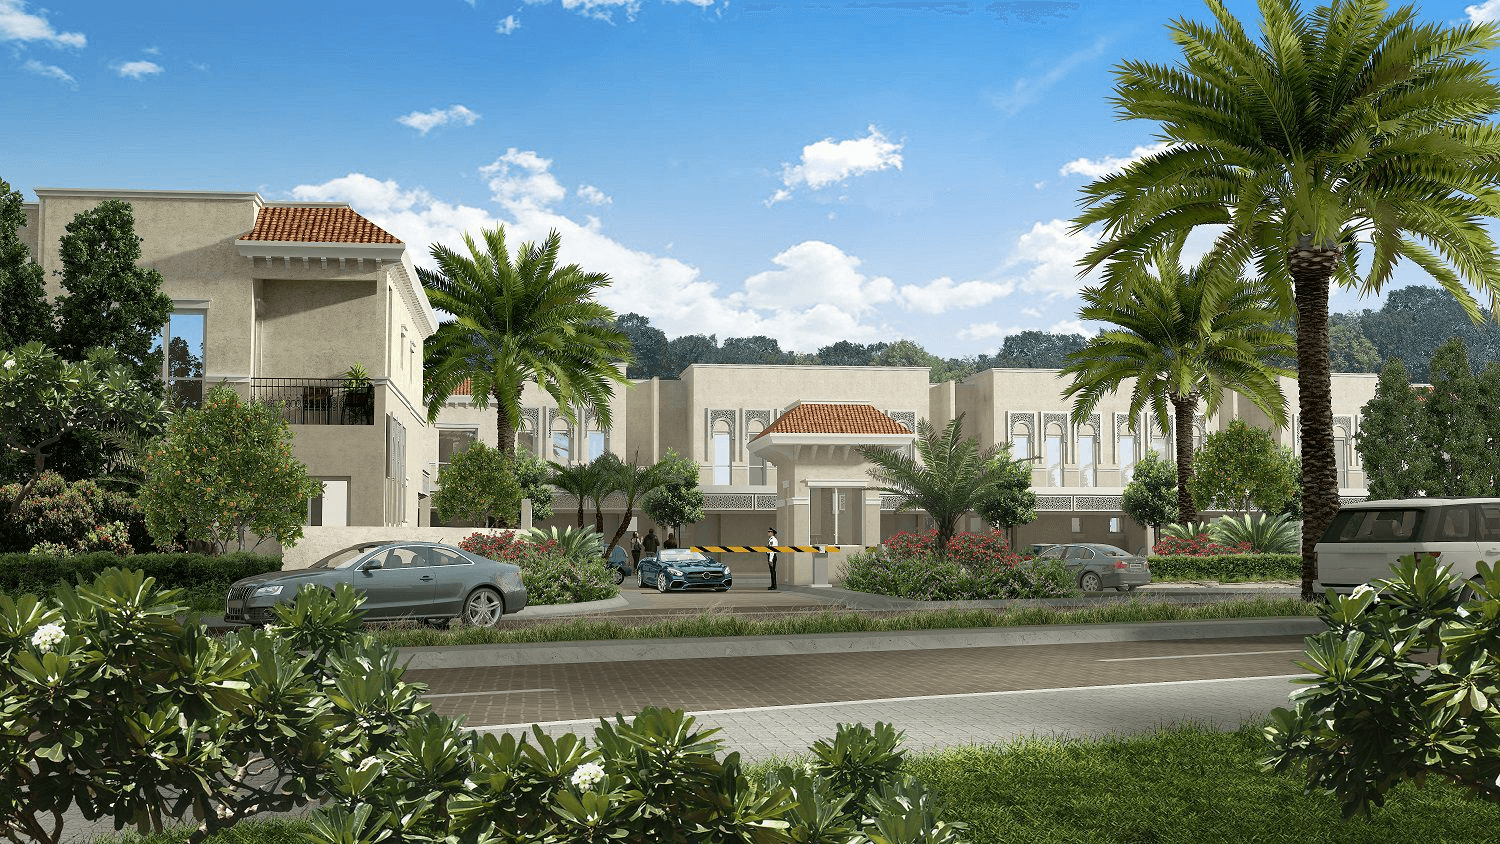 Al  Andalus Townhouses